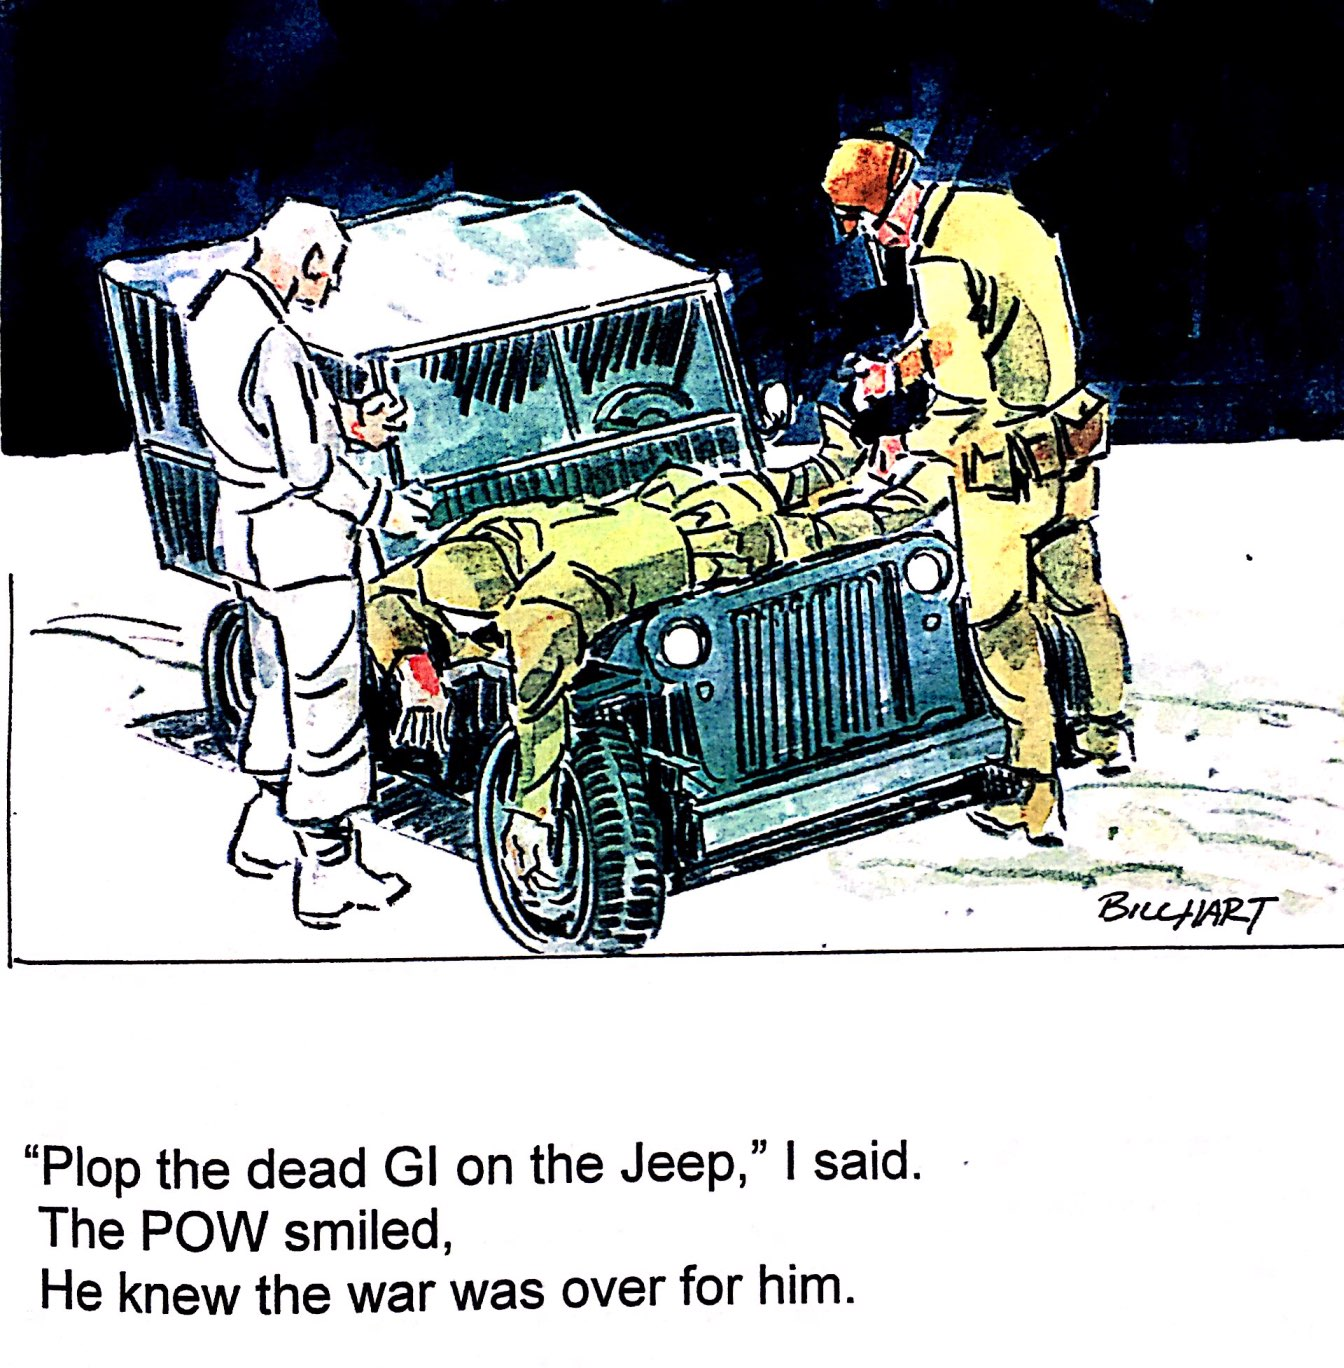 2 SOLDIERS AND A JEEP